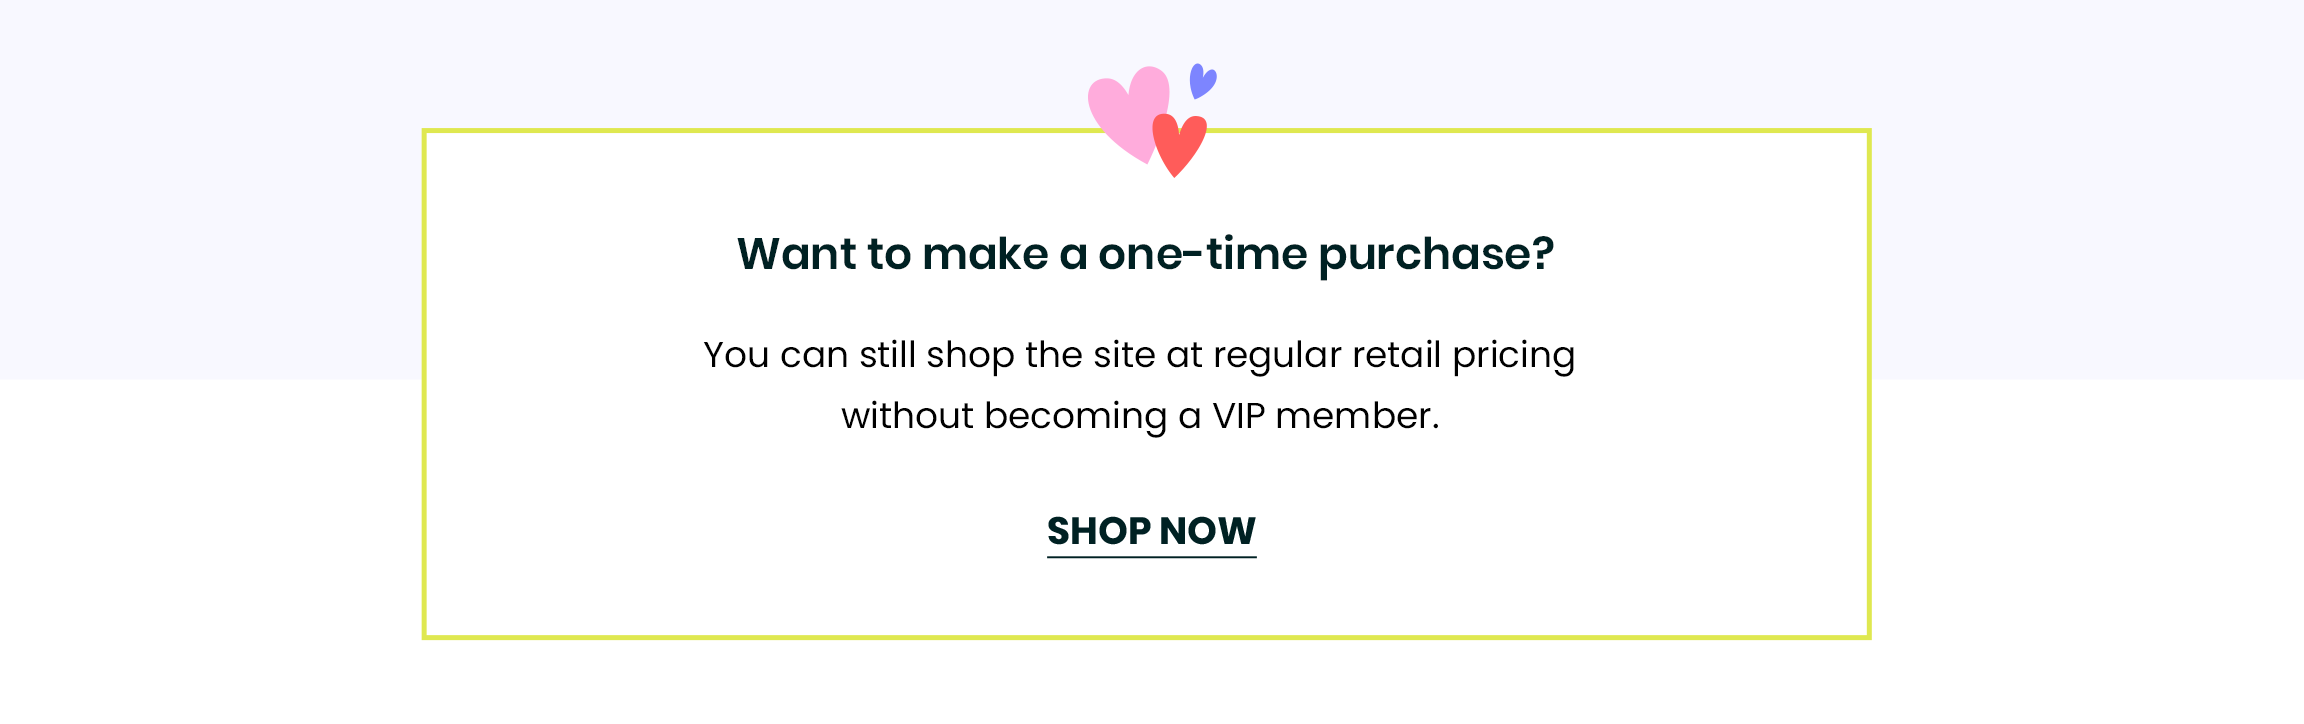 Want to make a one-time purchase? You can still shop the site at regular retail pricing without becoming a VIP member.